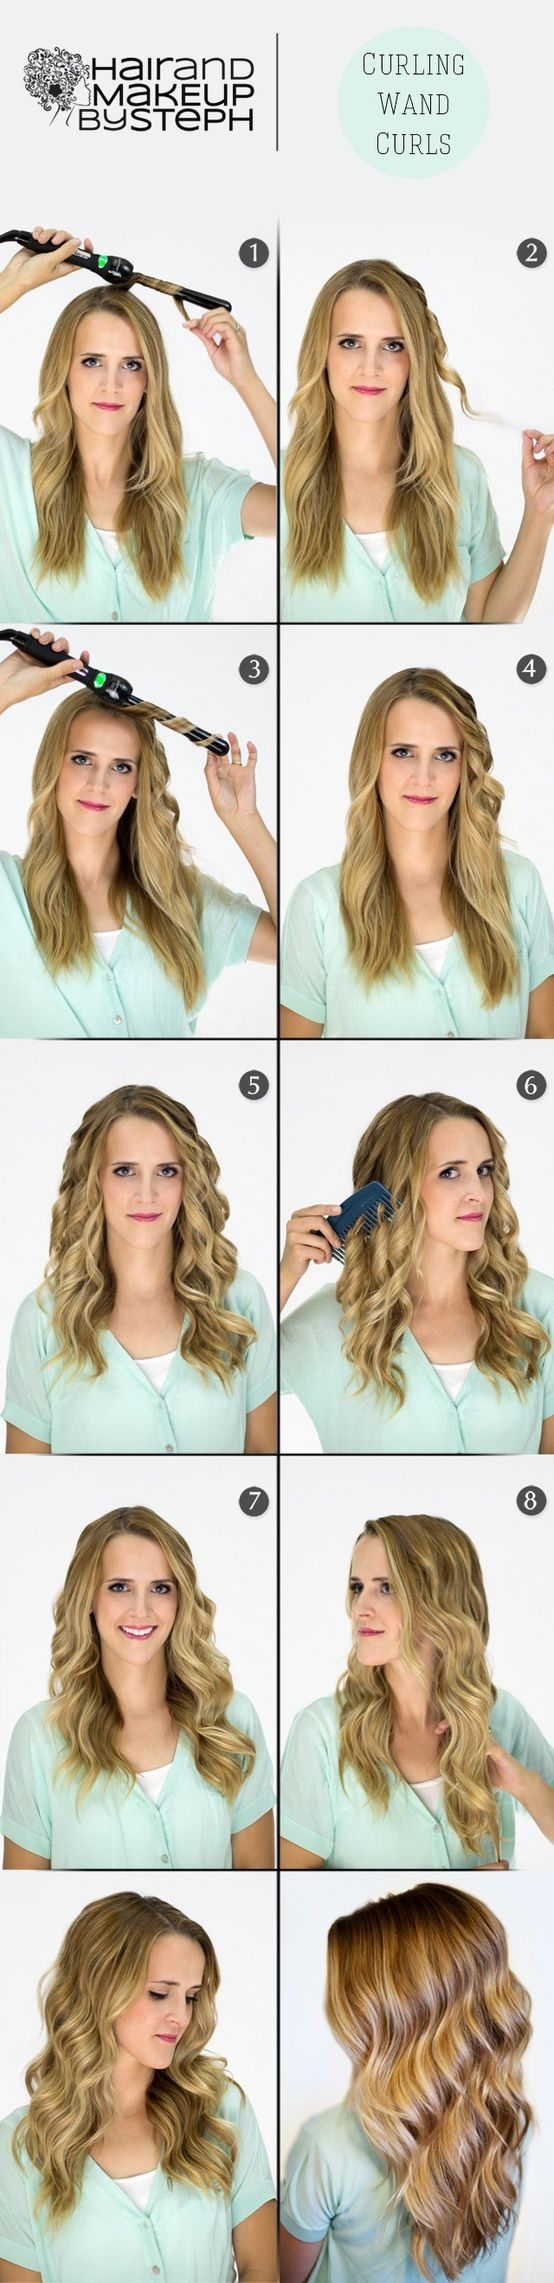 best hair images on pinterest hairstyle ideas hair ideas and